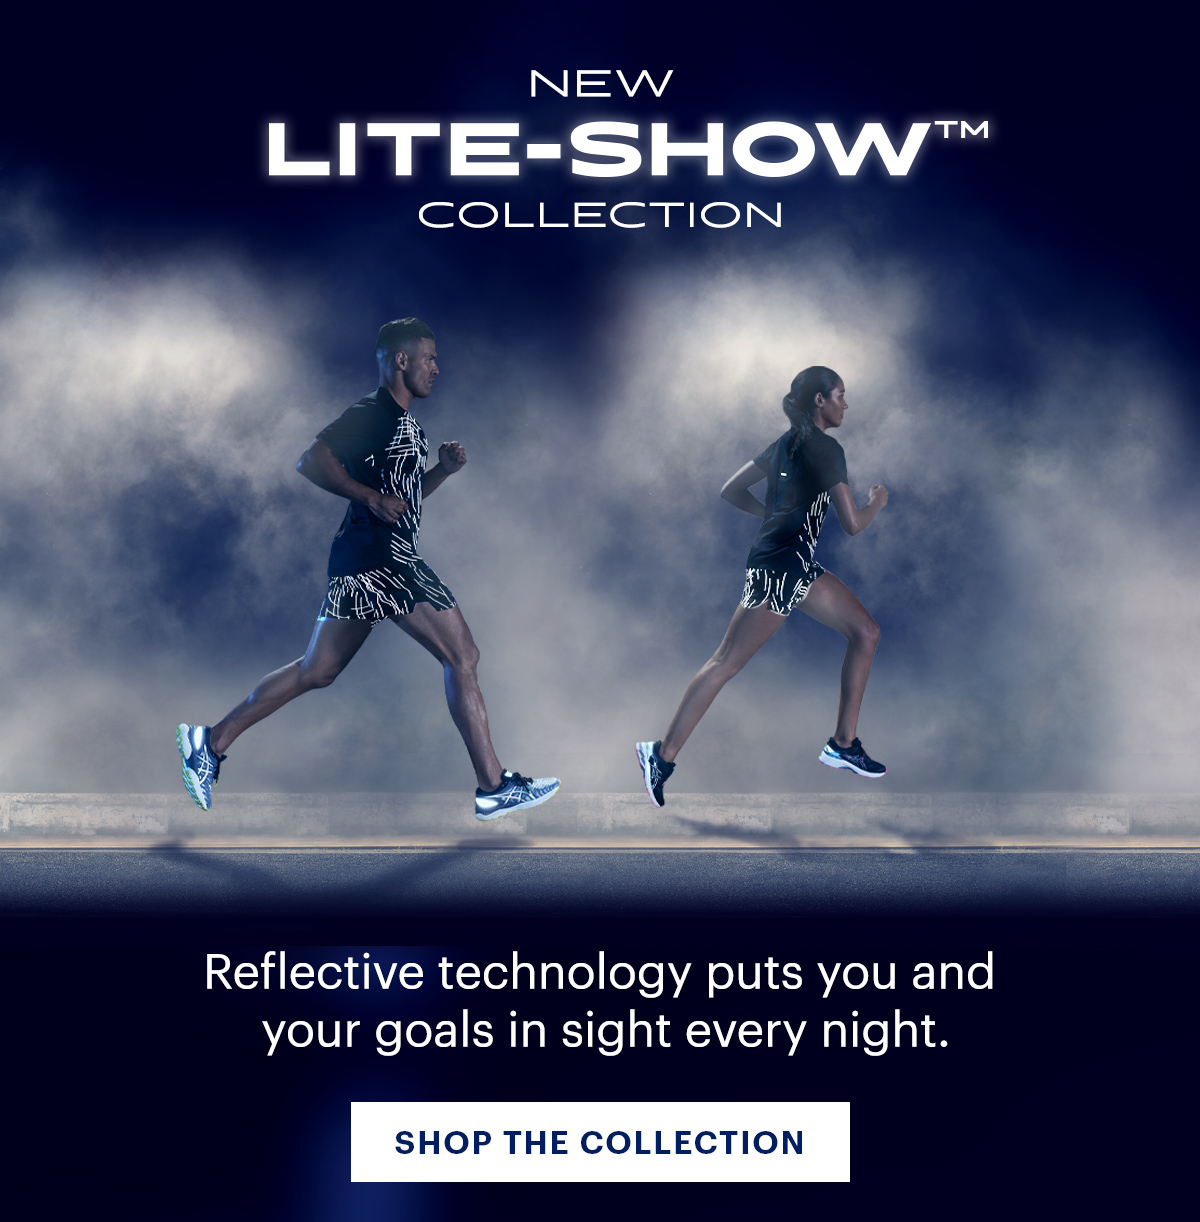 New Lite-Show Collection